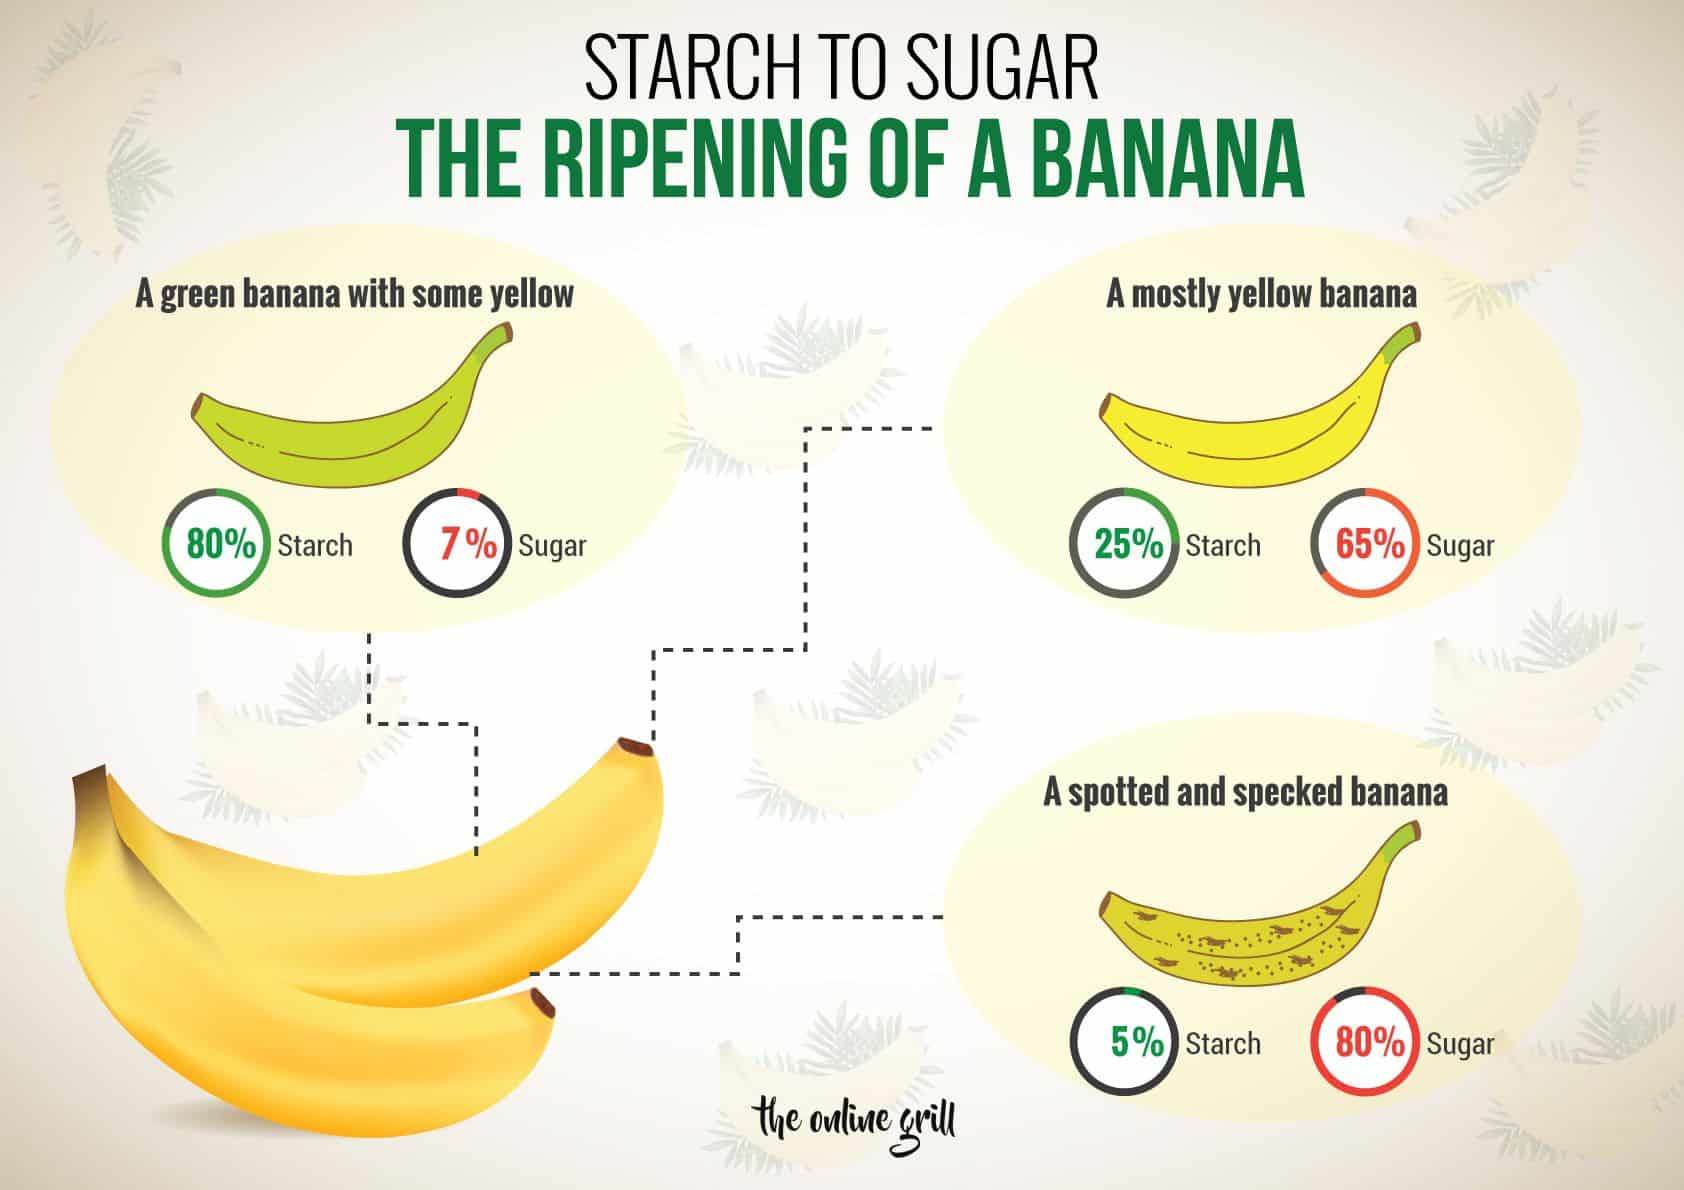 starch and sugar content in bananas